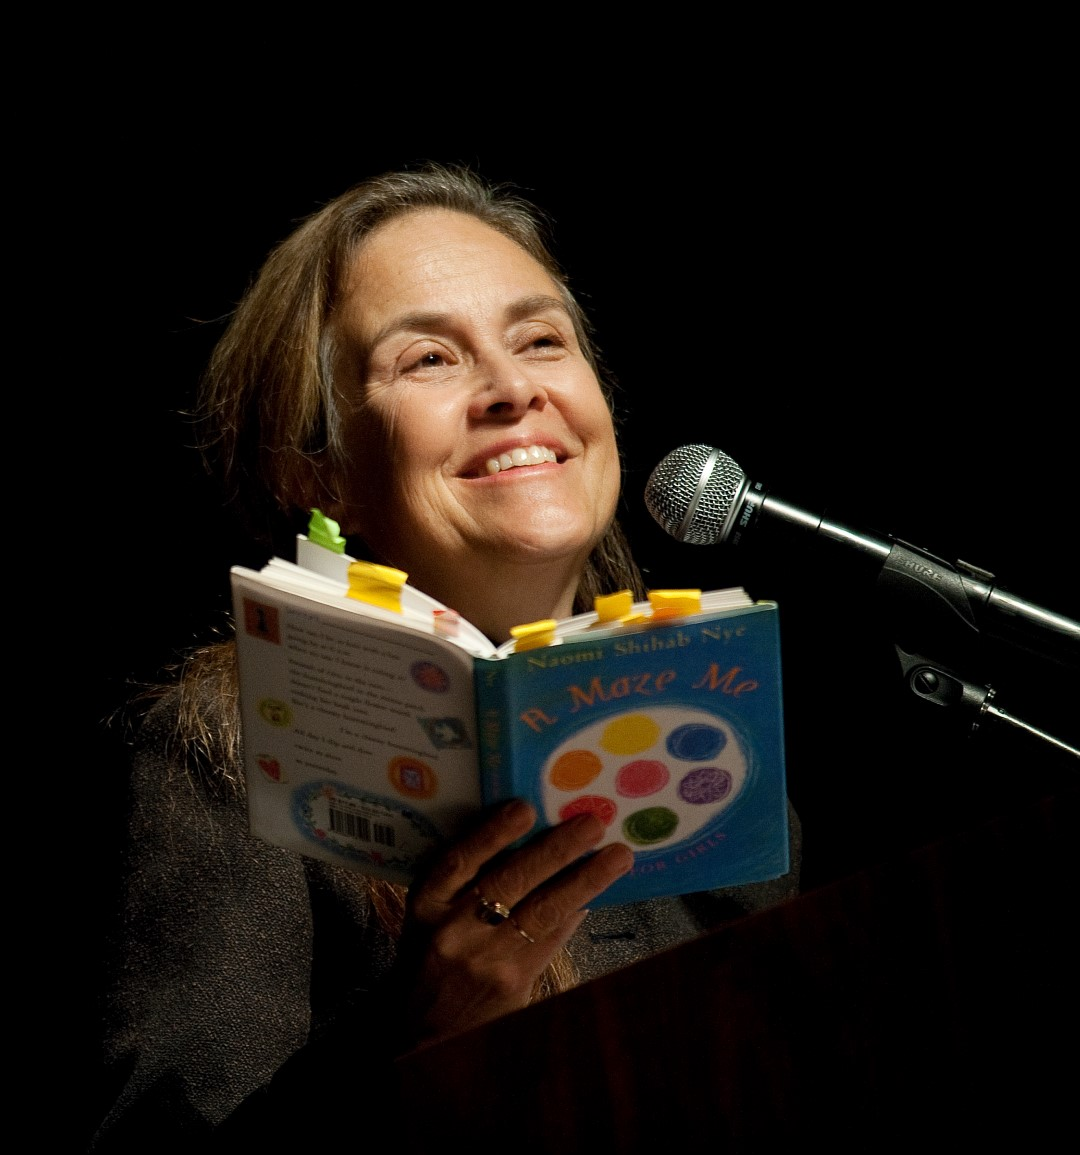 Photo of author Naomi Shihab Nye positioned behind a microphone and holding a book